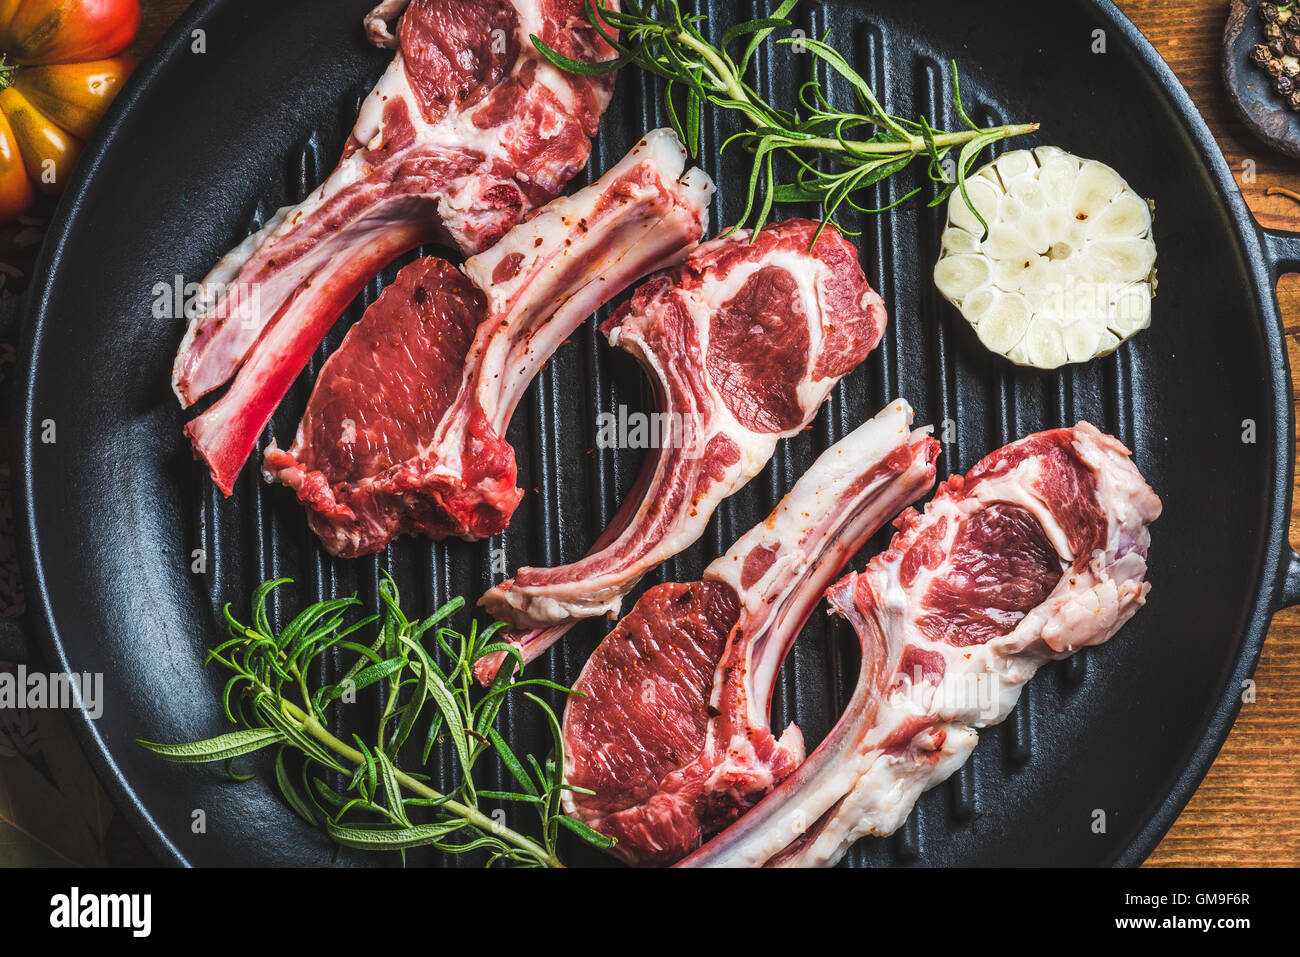 Raw uncooked lamb meat chops with rosemary and garlic - Stock Image